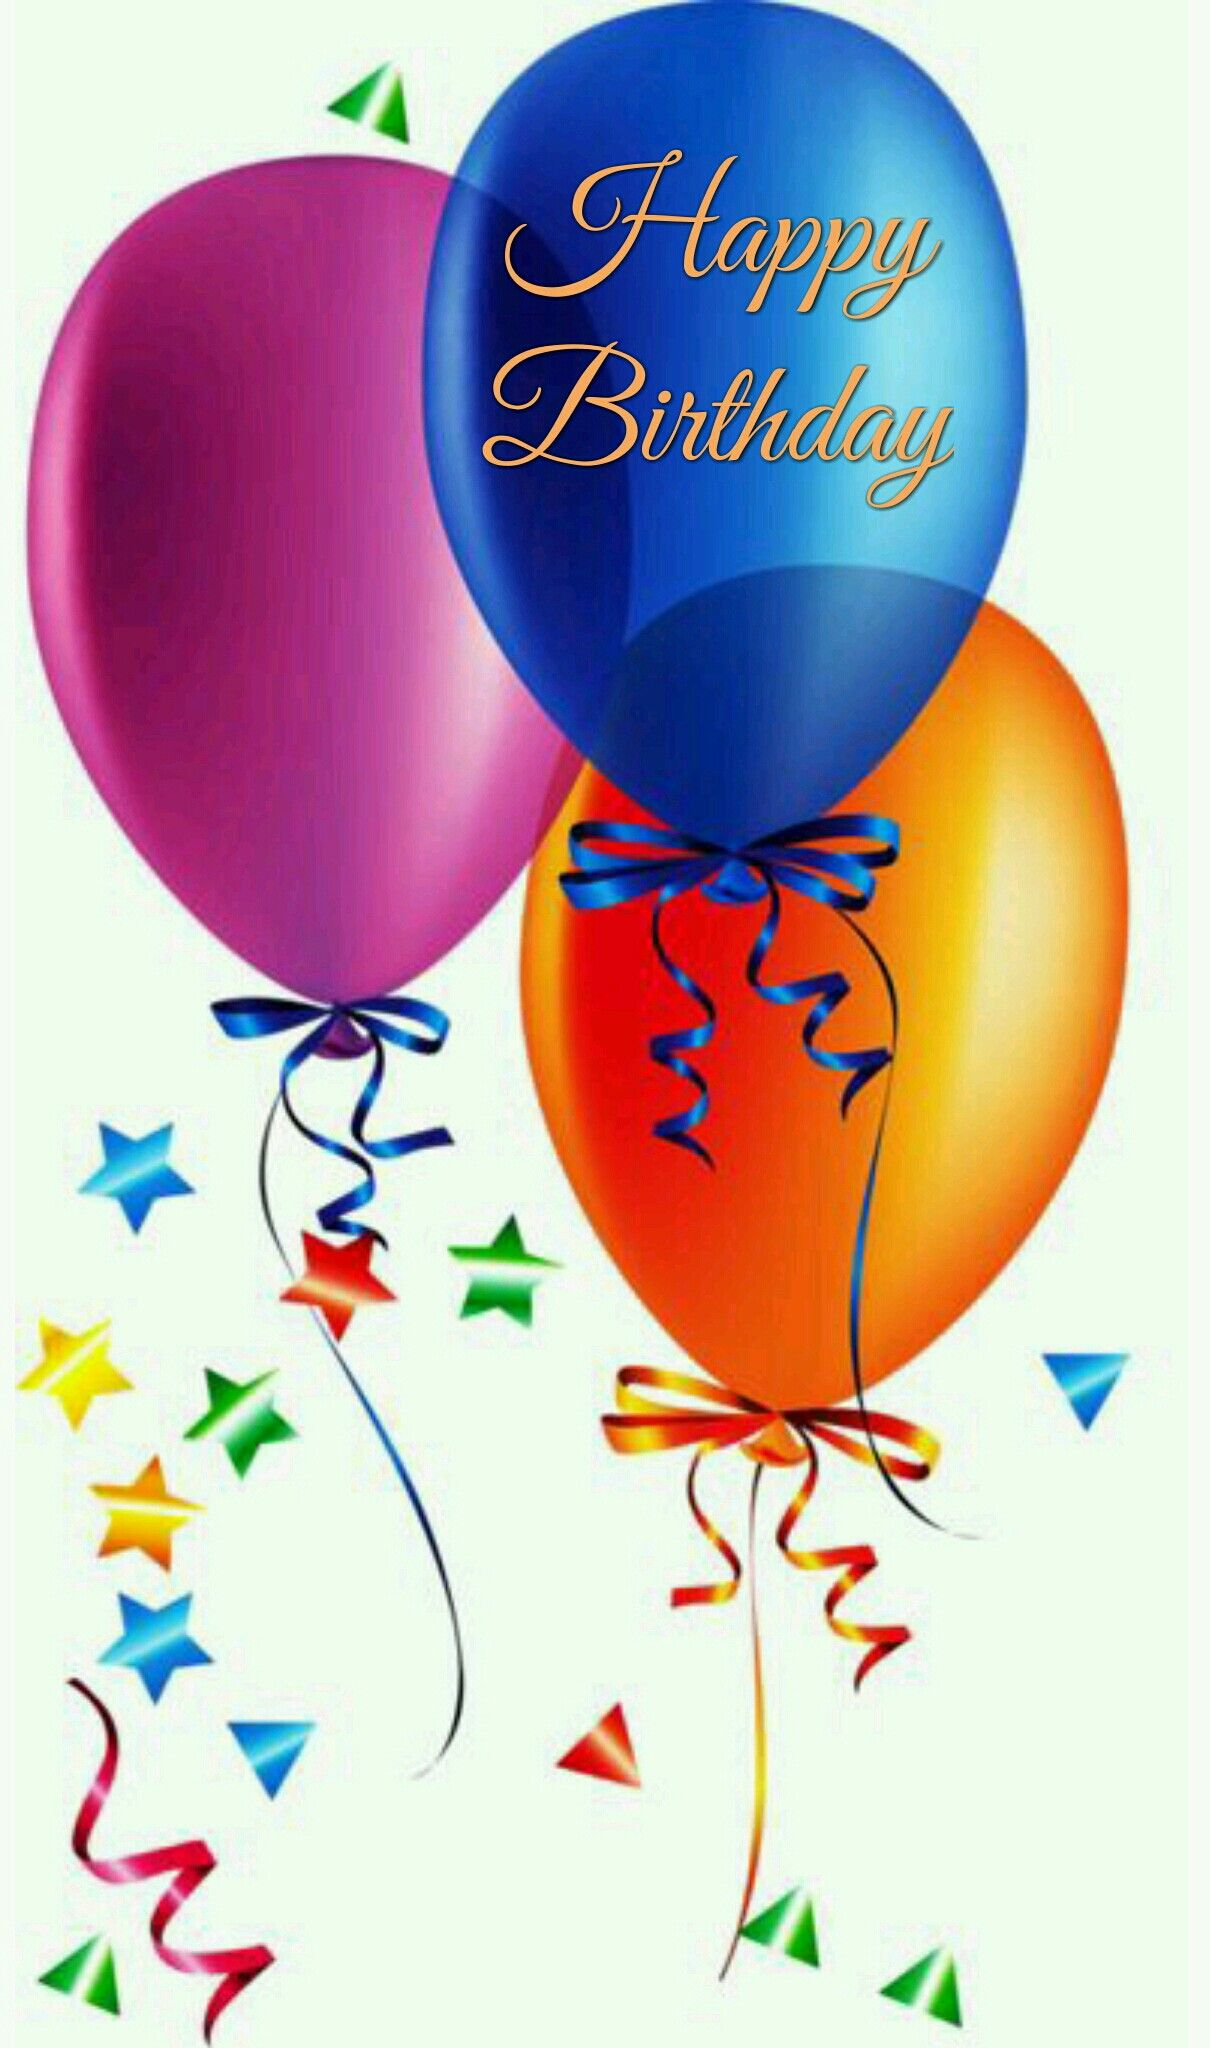 Happy birthday Vickie I hope your day is blessed